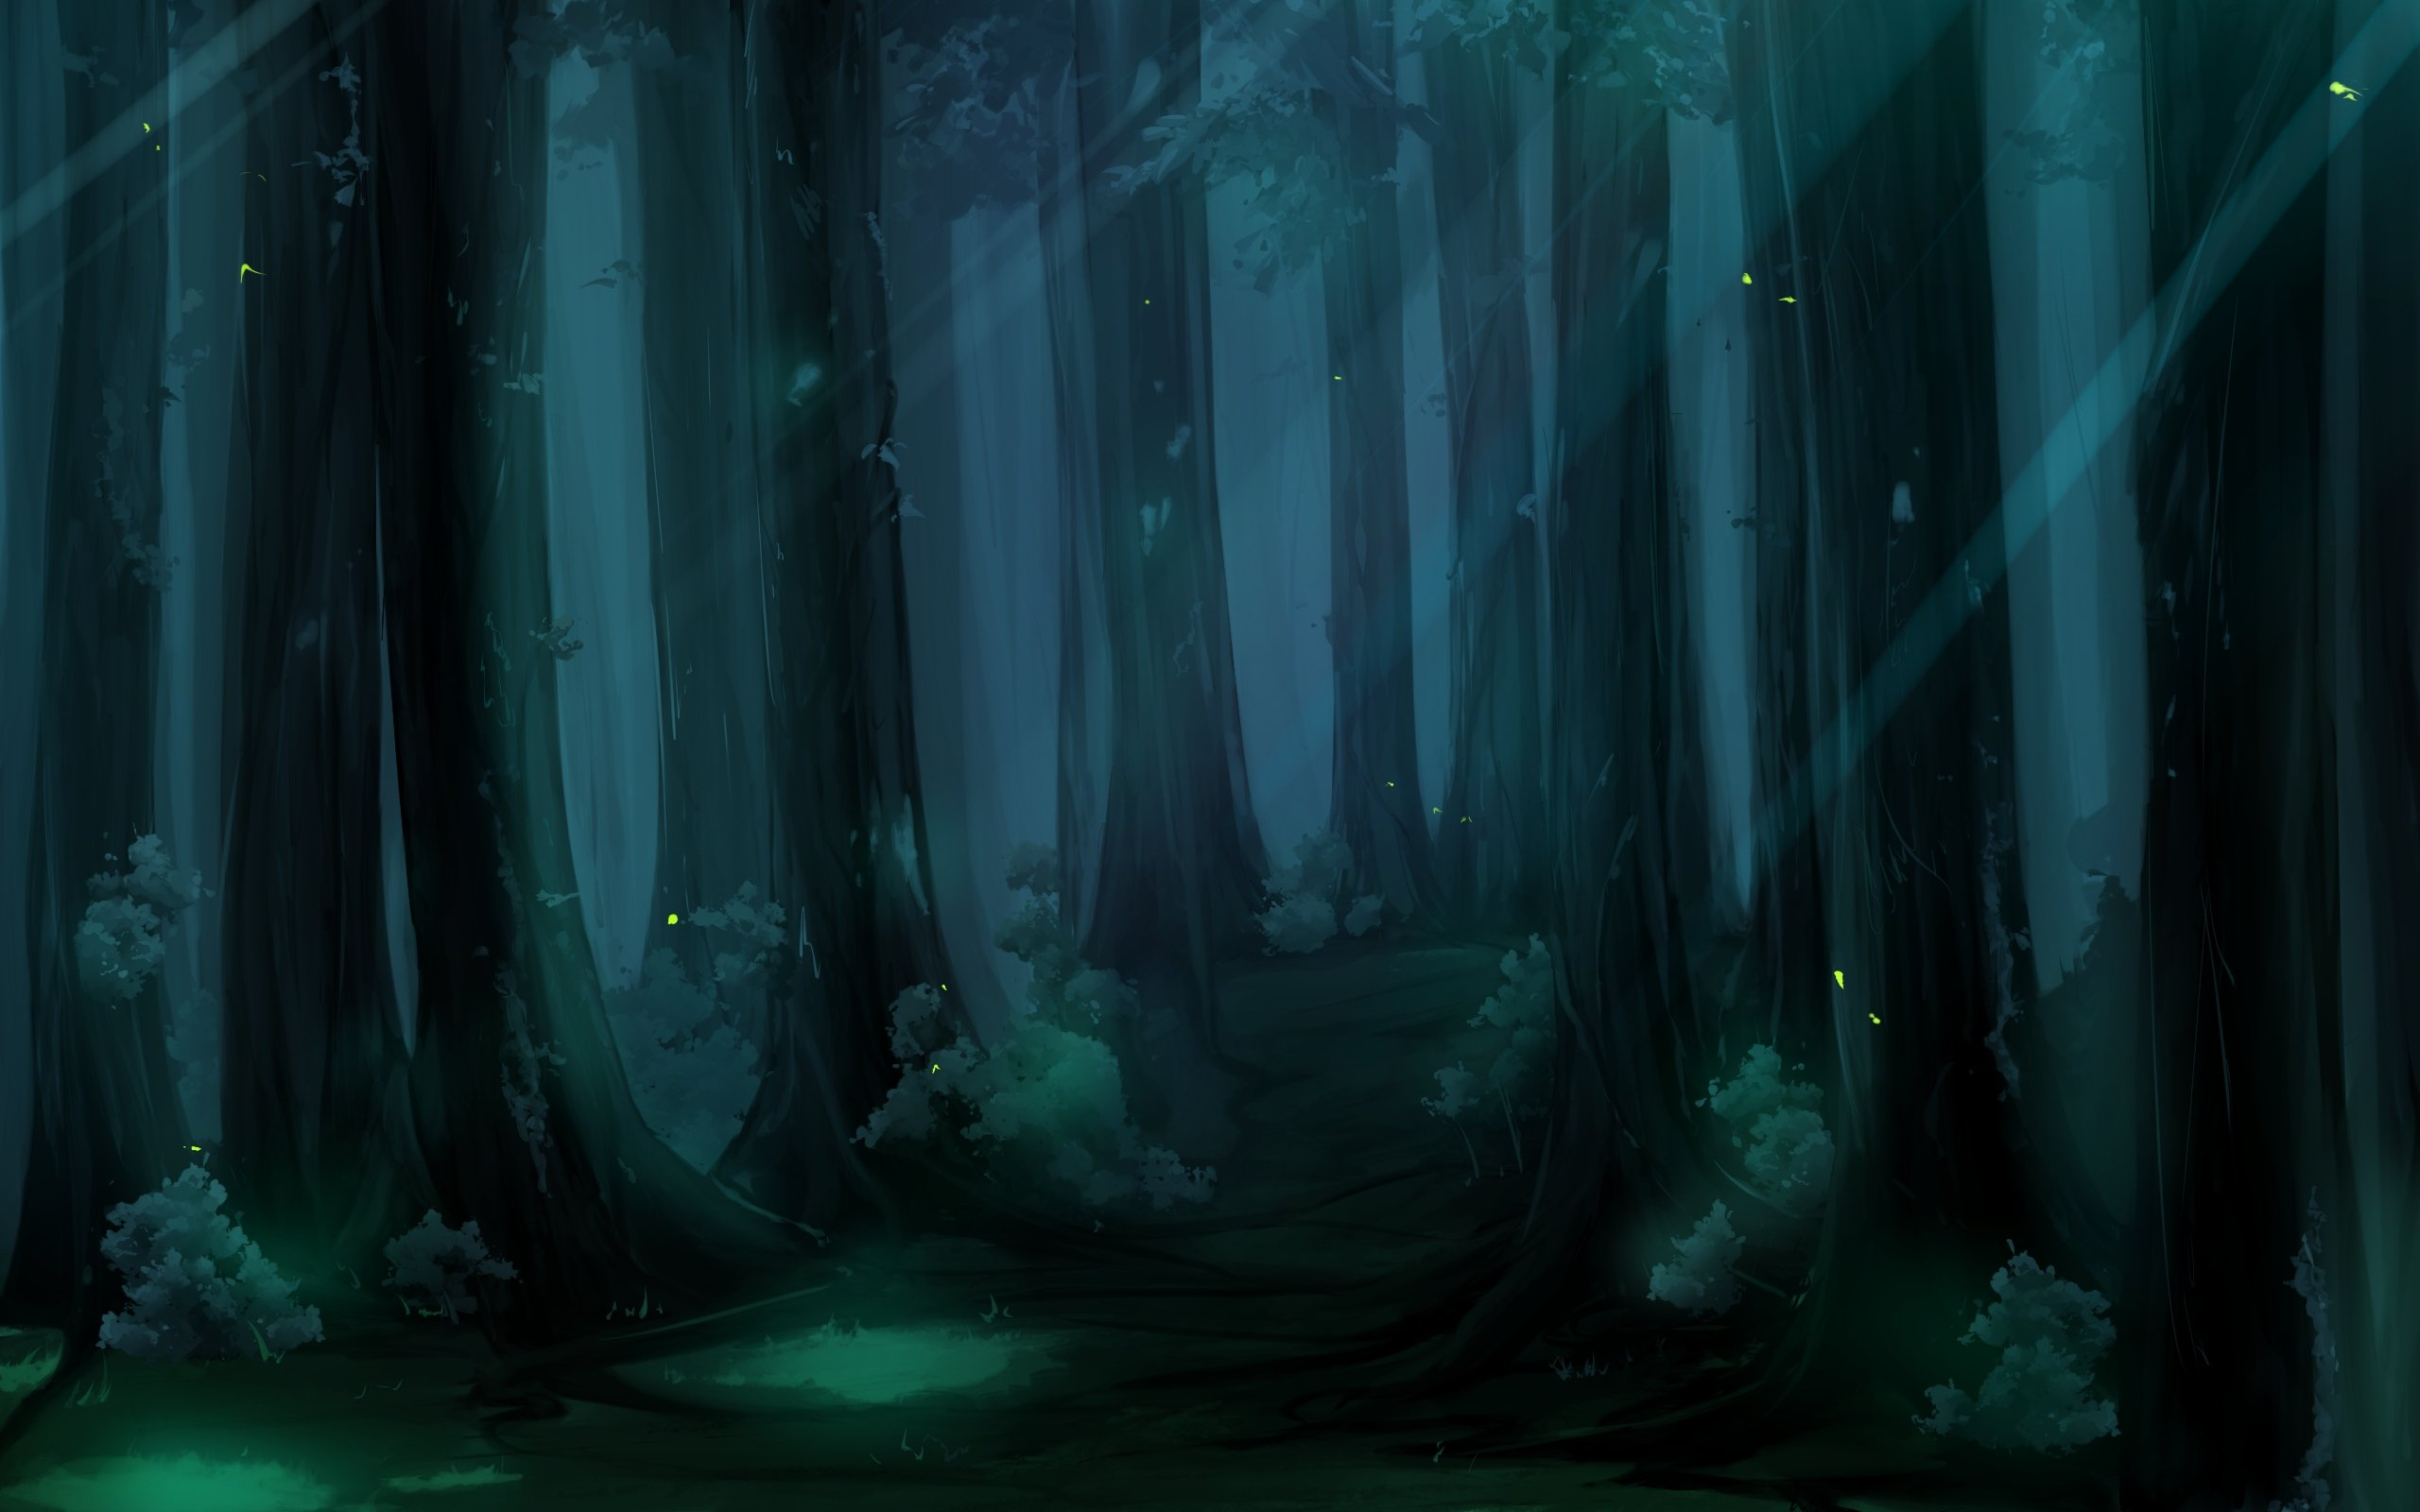 Anime Backgrounds Forest Anime backgrou 2560x1600